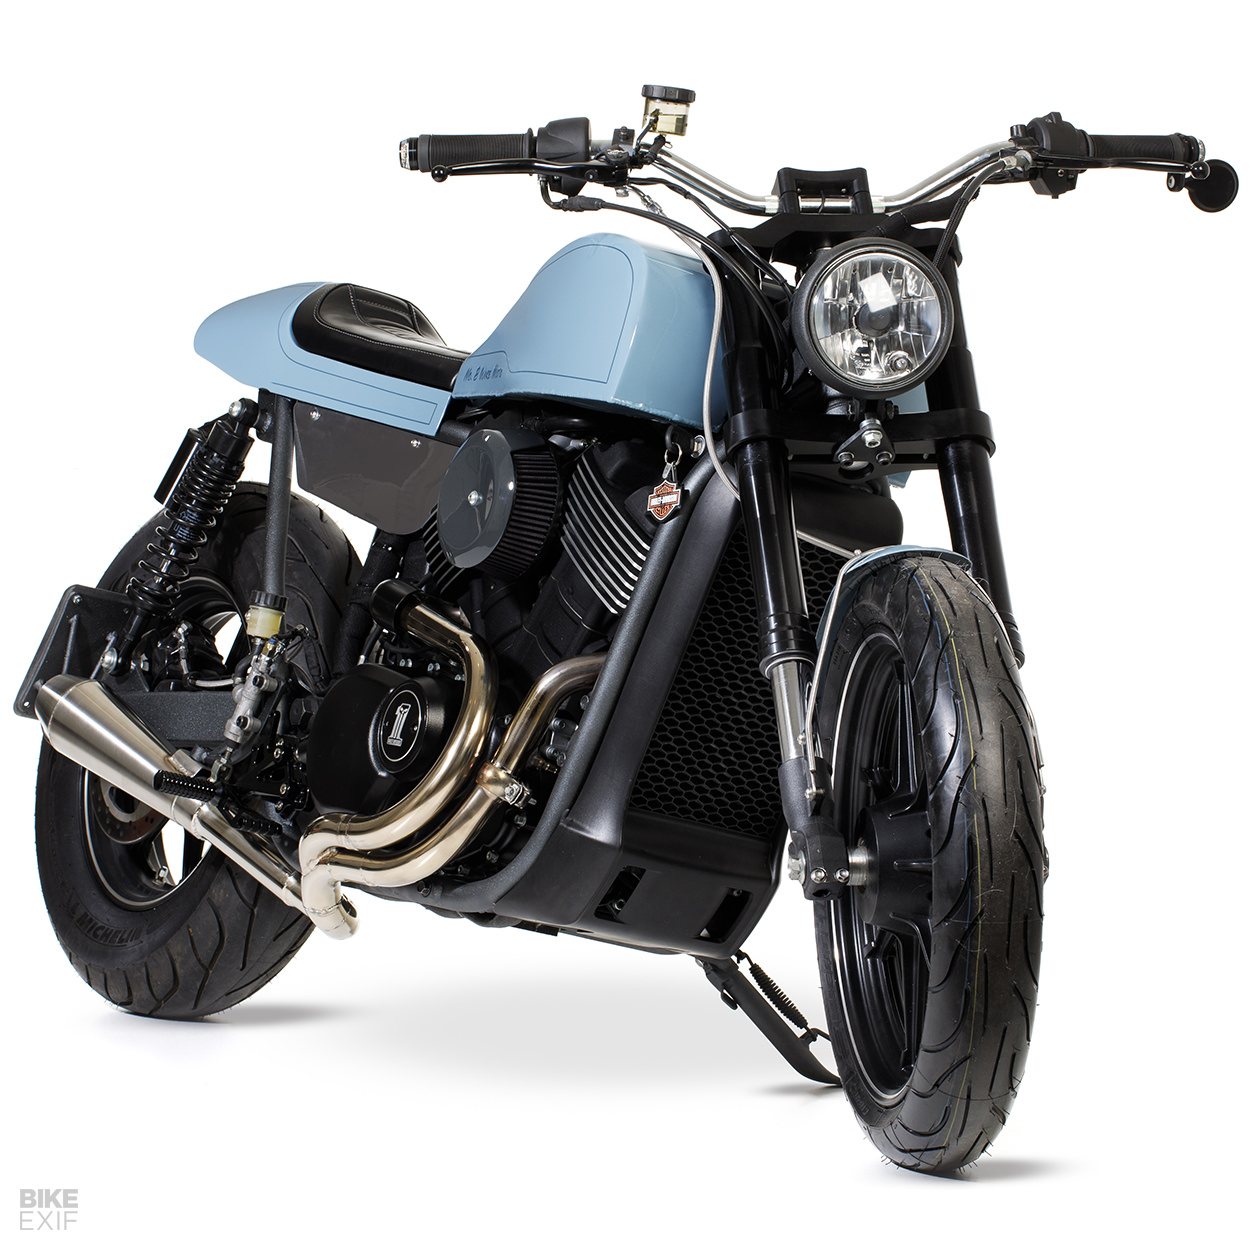 HD Street 750 custom by No. 8 Wire Motorcycles